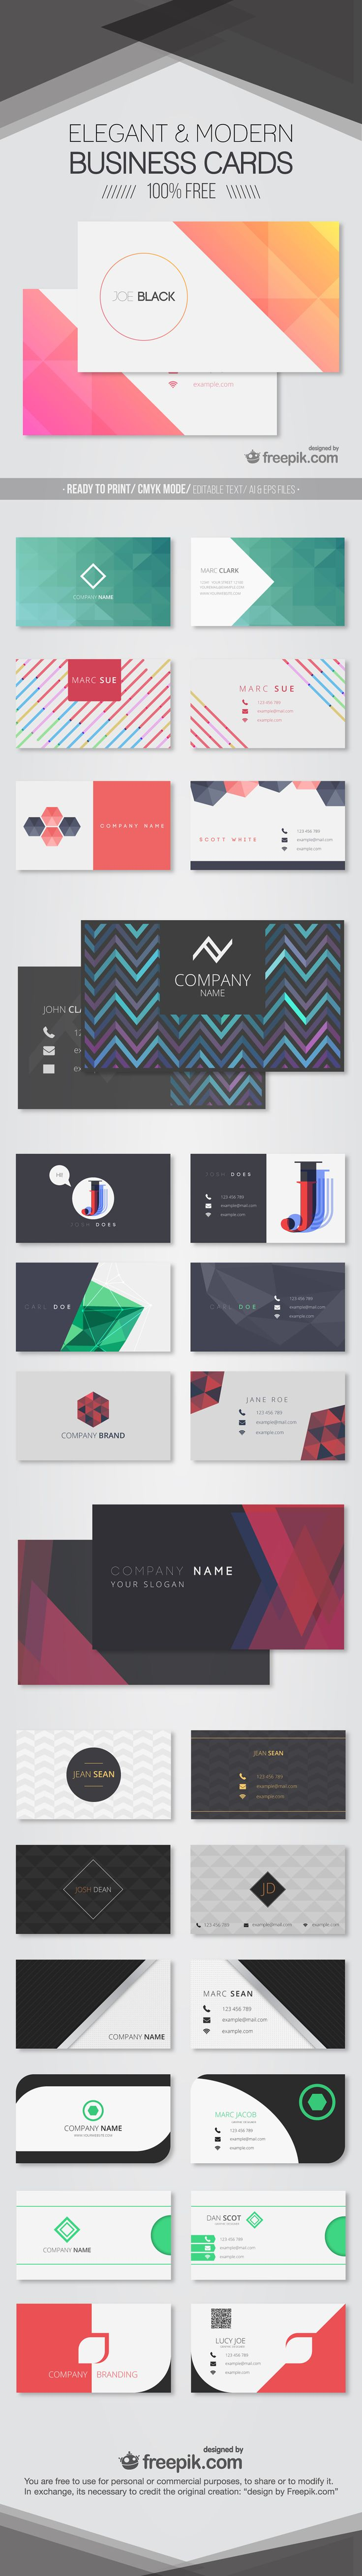 Best 25 Modern business cards ideas on Pinterest